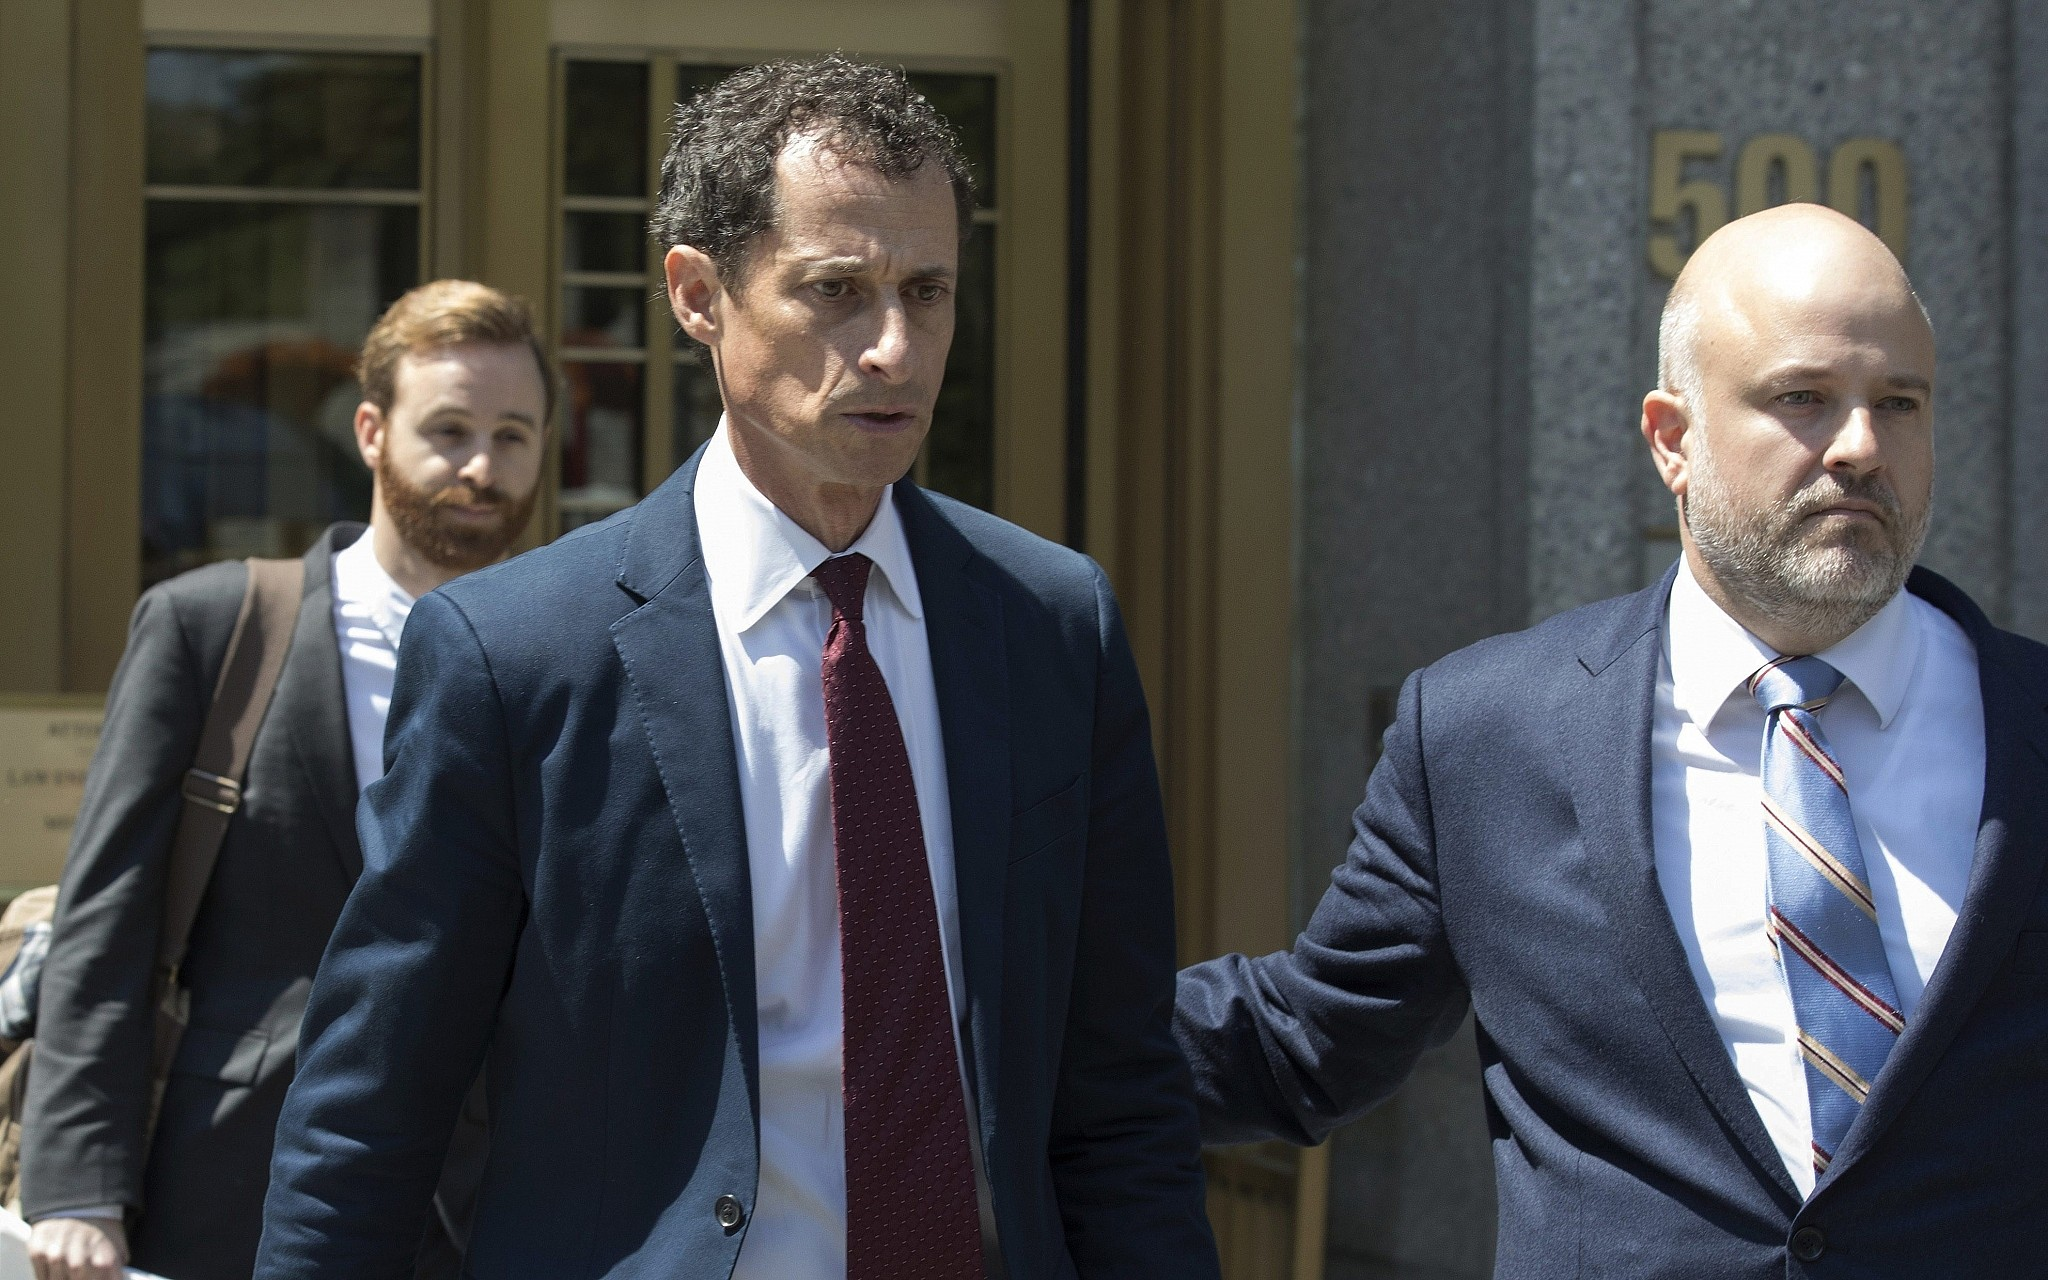 Anthony Weiner leaves federal court in New York after pleading guilty to a charge of sending sexual material to a minor